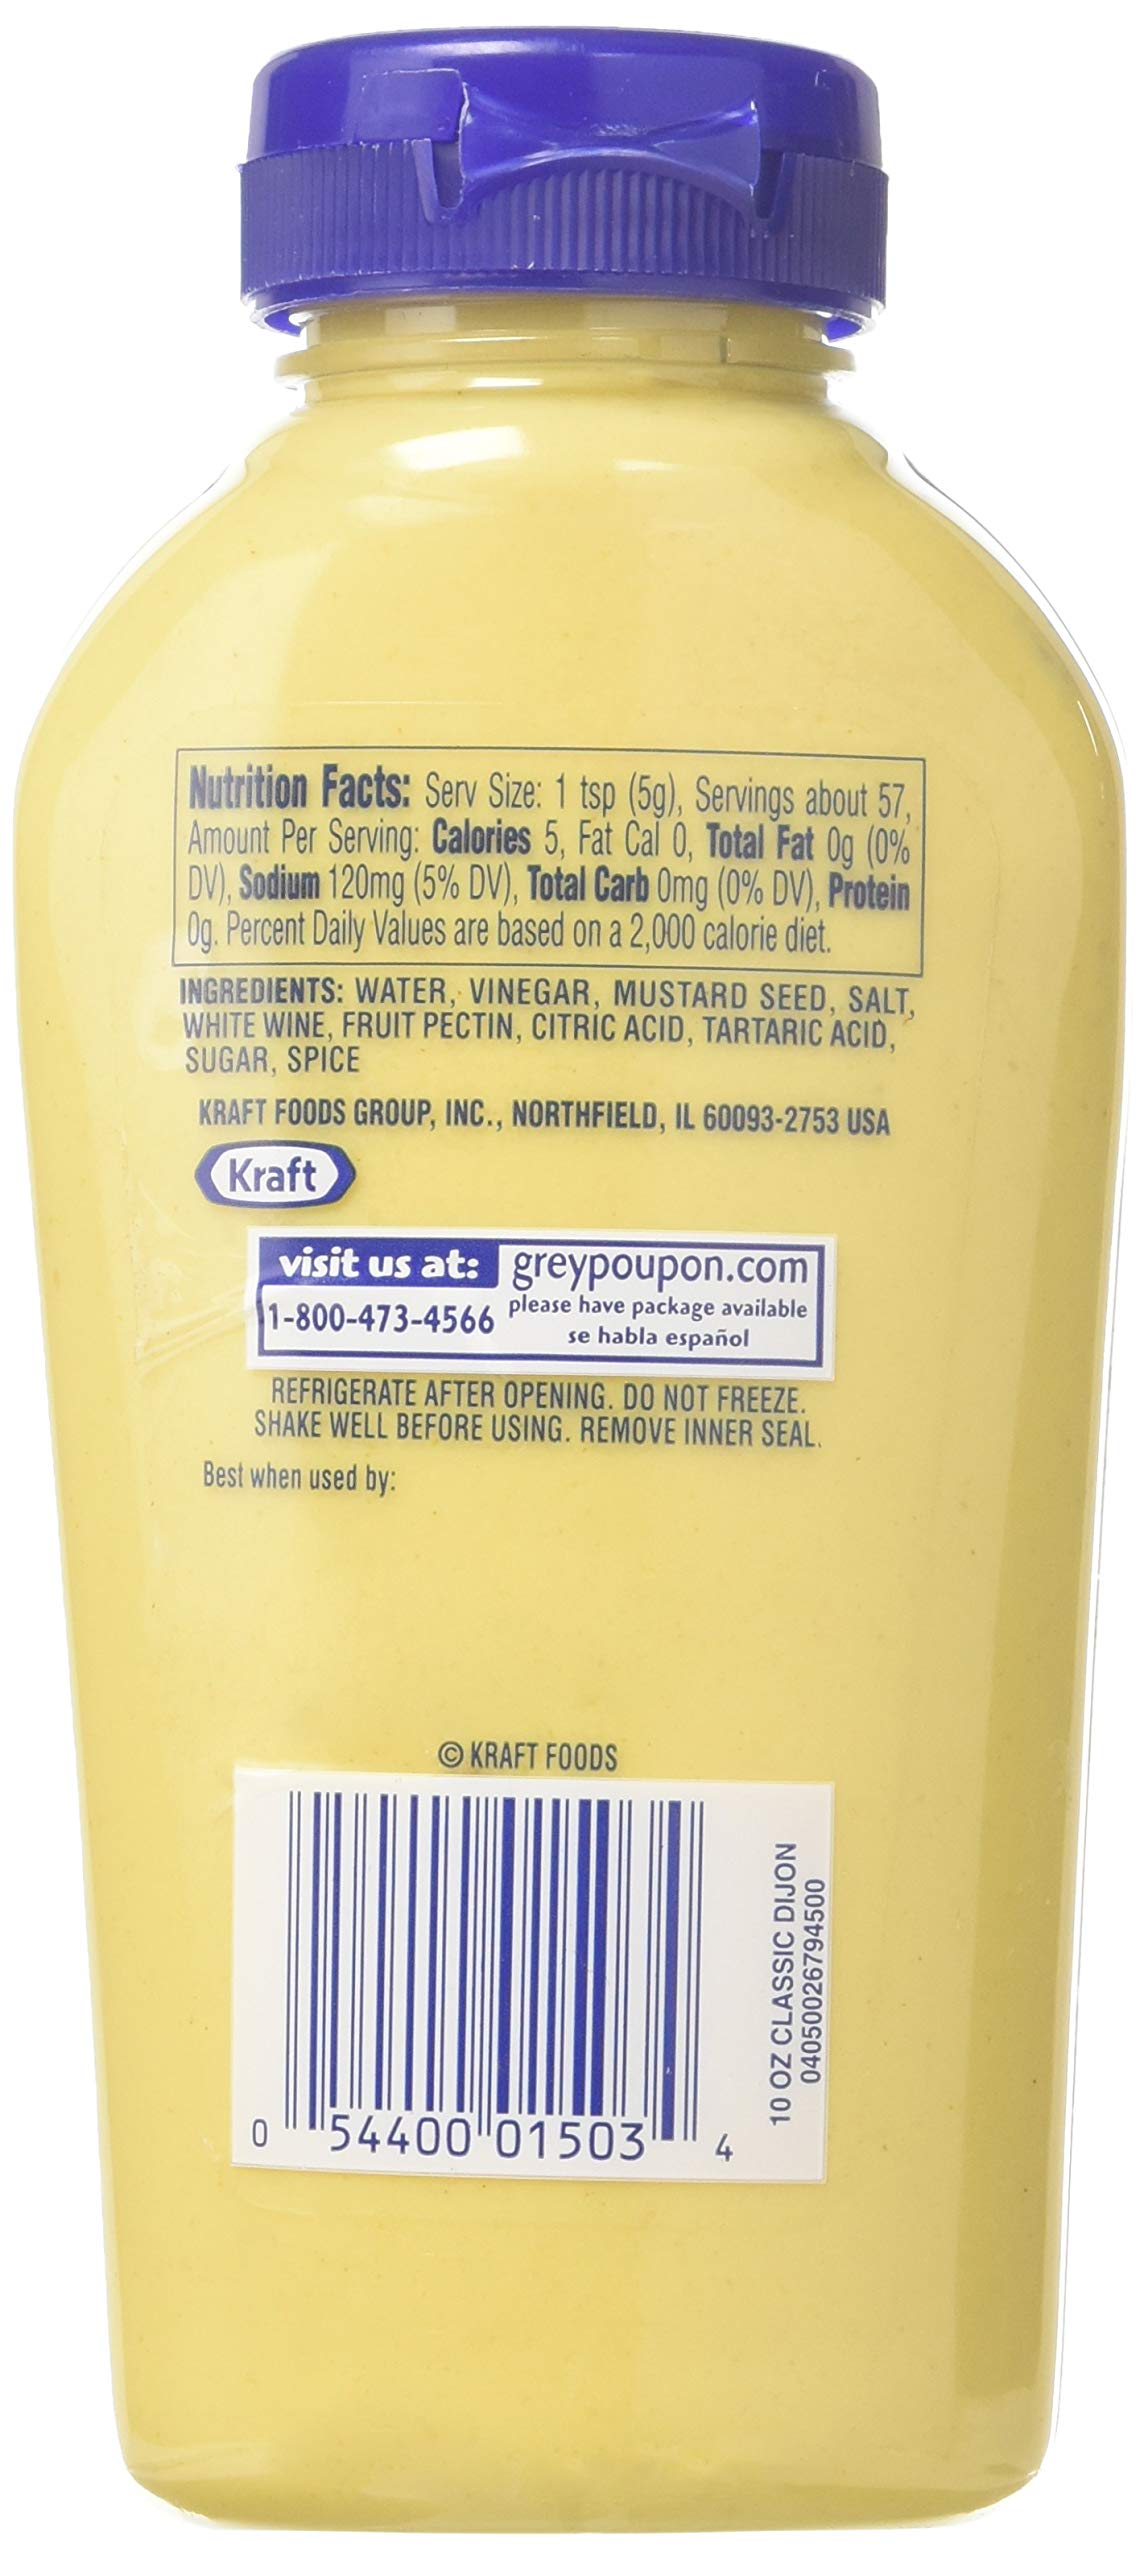 Grey Poupon Dijon Mustard (10 oz Bottle) 4 One 10 oz. bottle of Grey Poupon Dijon Mustard Grey Poupon Dijon Mustard uses the finest ingredients for a gourmet condiment #1 Grade Mustard Seeds and spices provide strong, delicious flavor